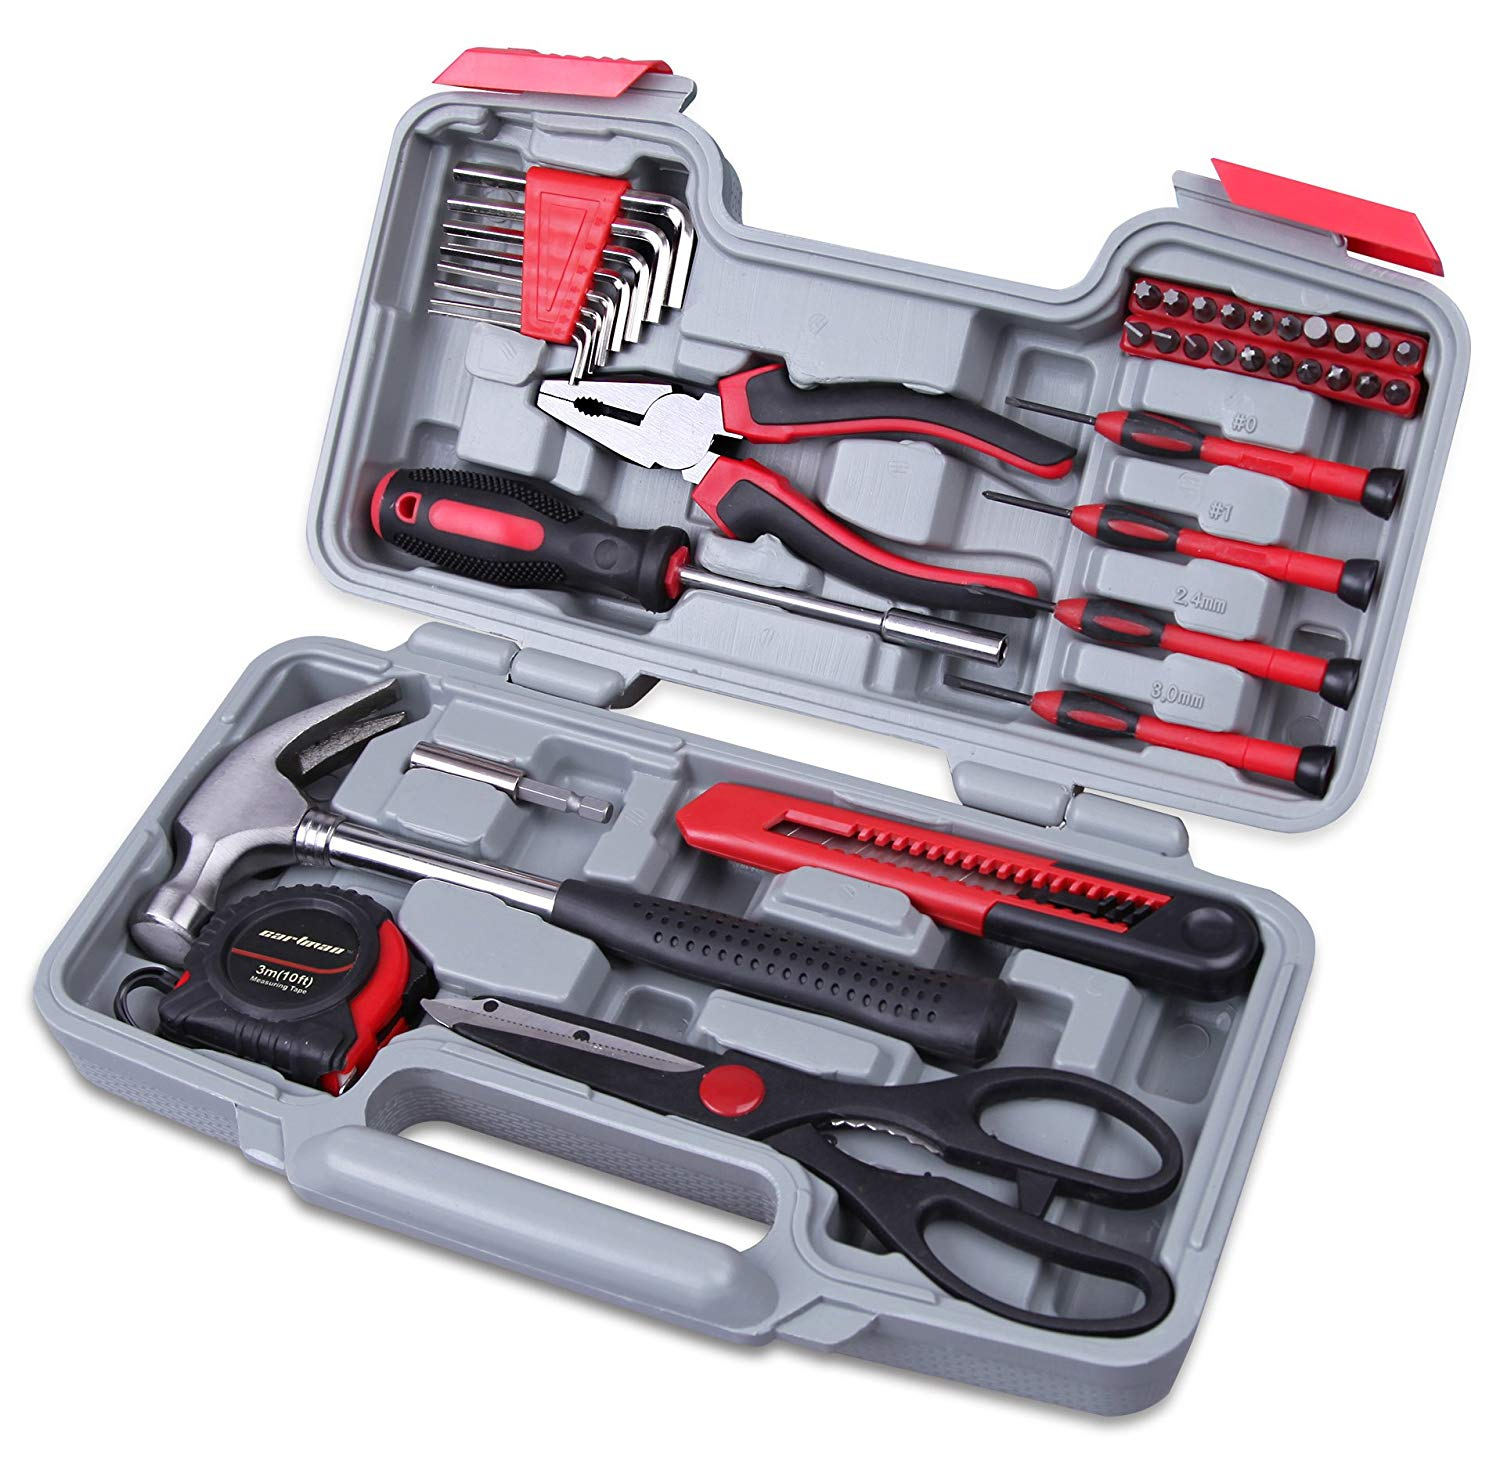 CARTMAN Red 39-Piece Cutting Plier and General Household Hand Tool